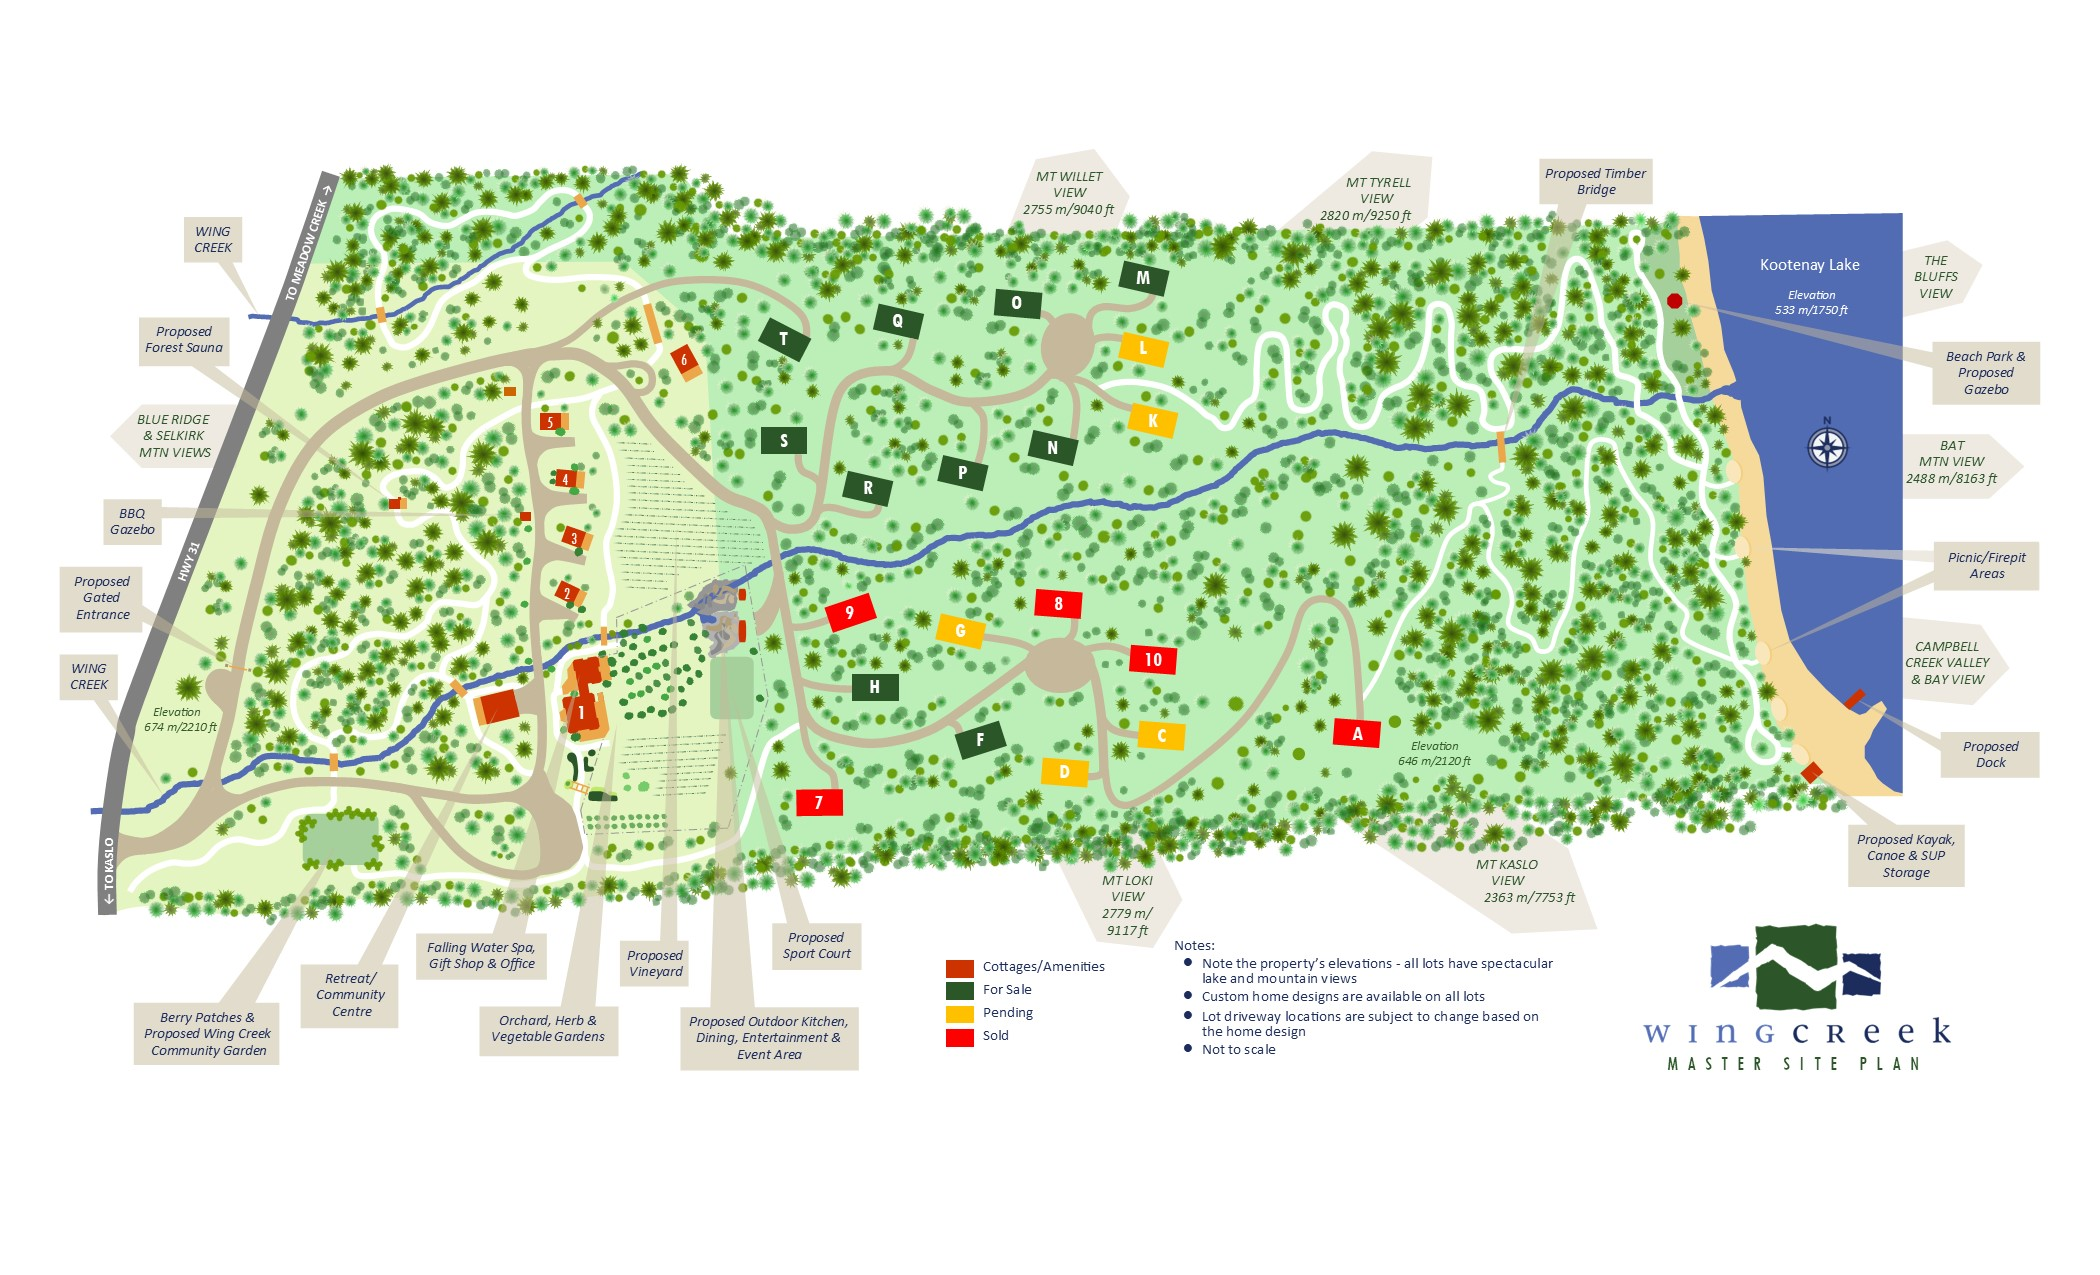 Wing Creek Master Site Plan